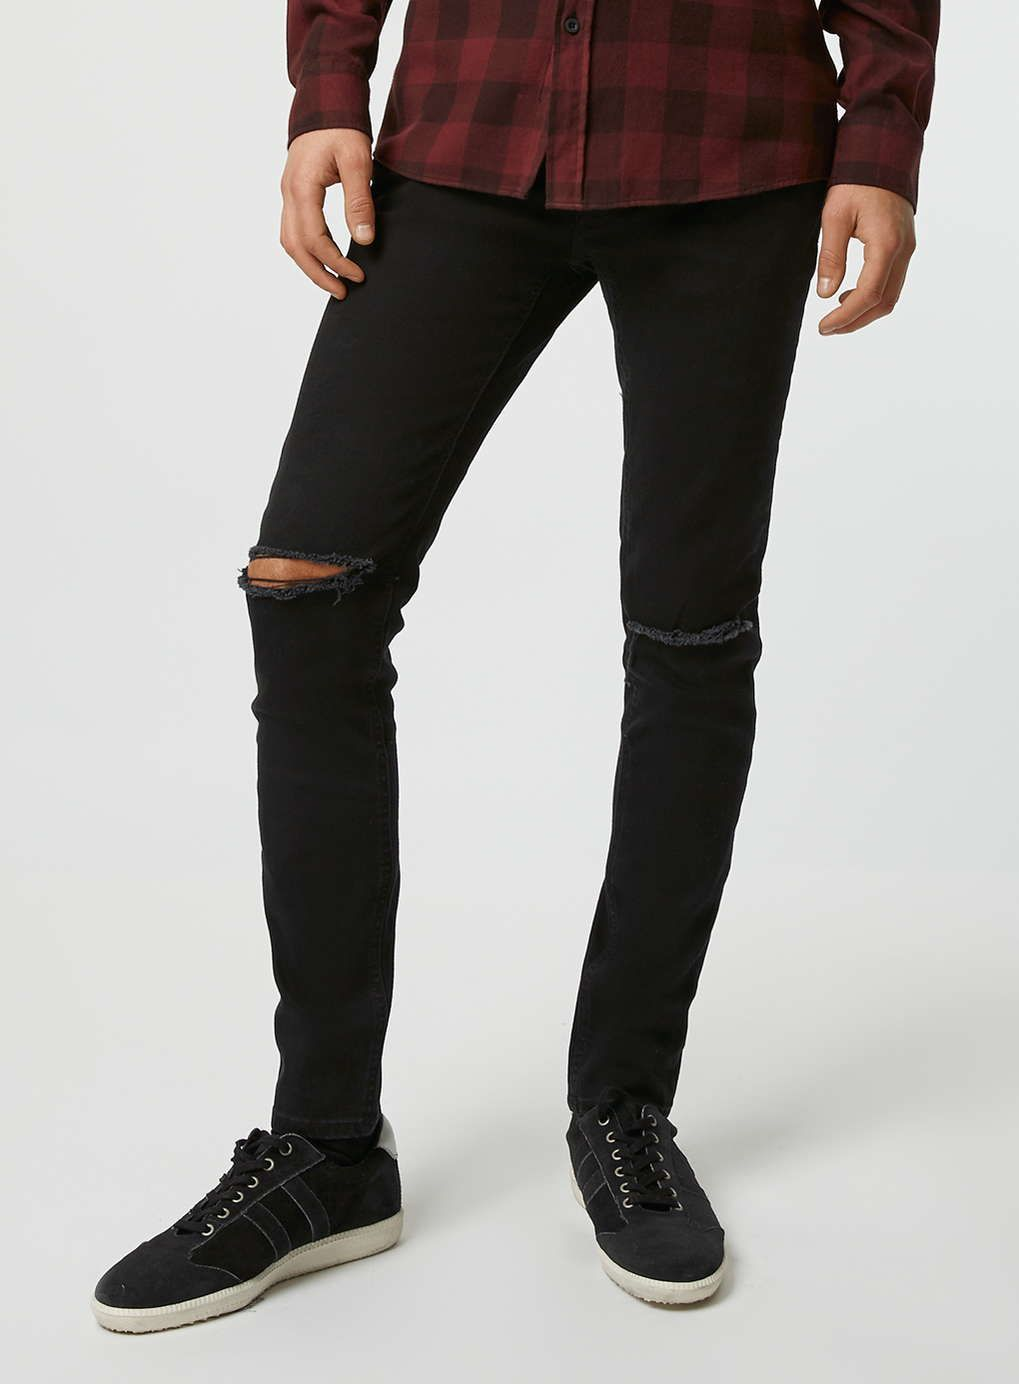 Washed Black Rip Stretch Skinny Jeans | Shops, Black ripped jeans ...